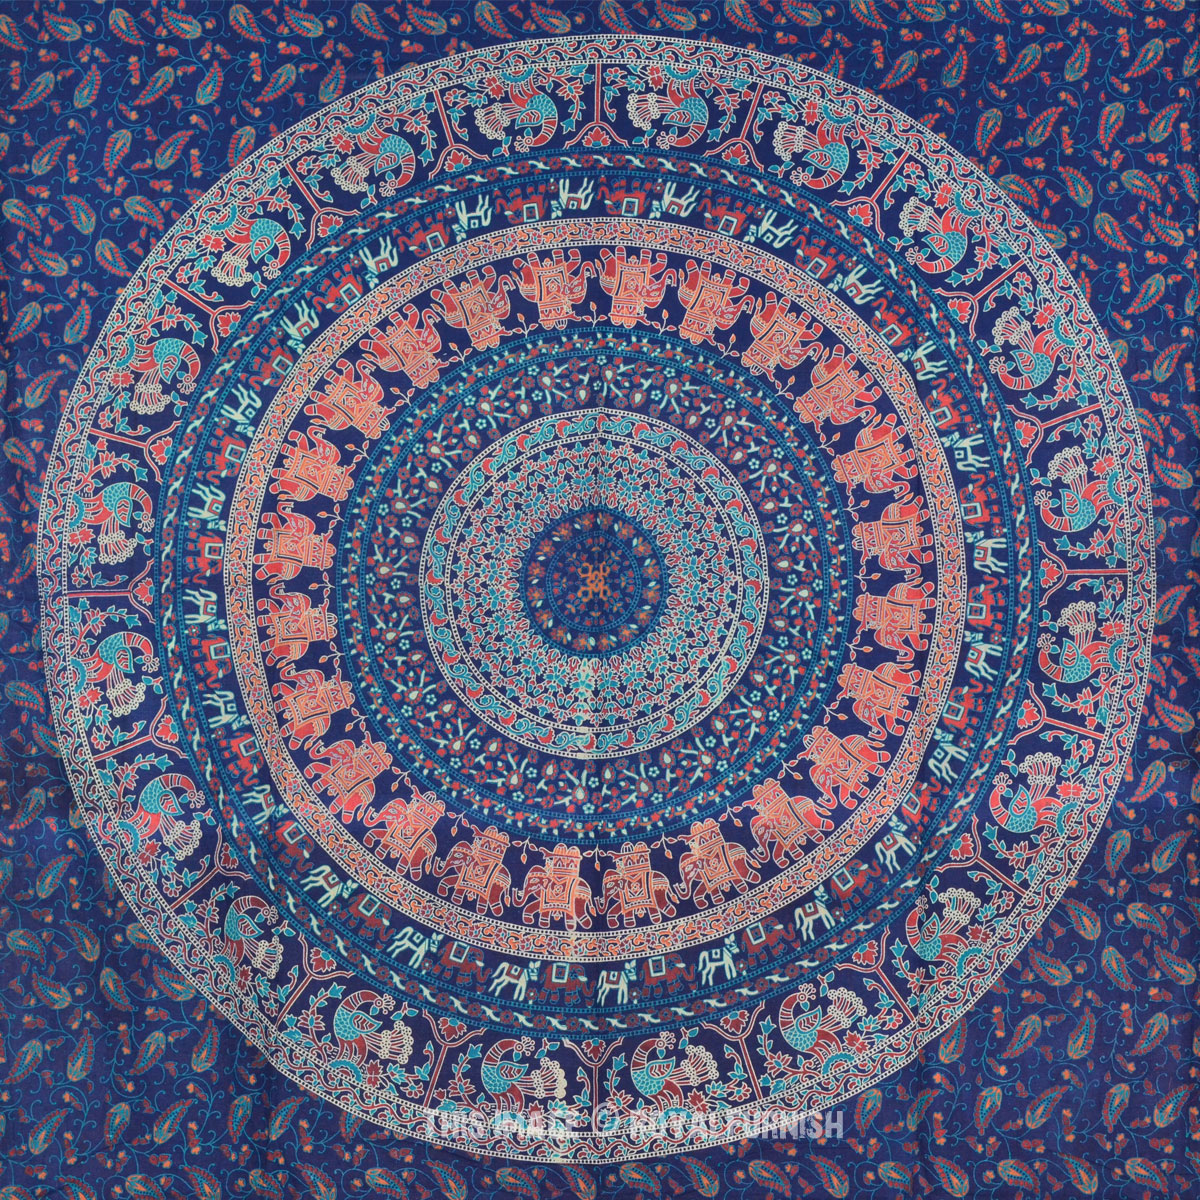 Cute Elephant Design Wallpaper Blue Indian Boho Style Psychedelic Bohemian Tapestry